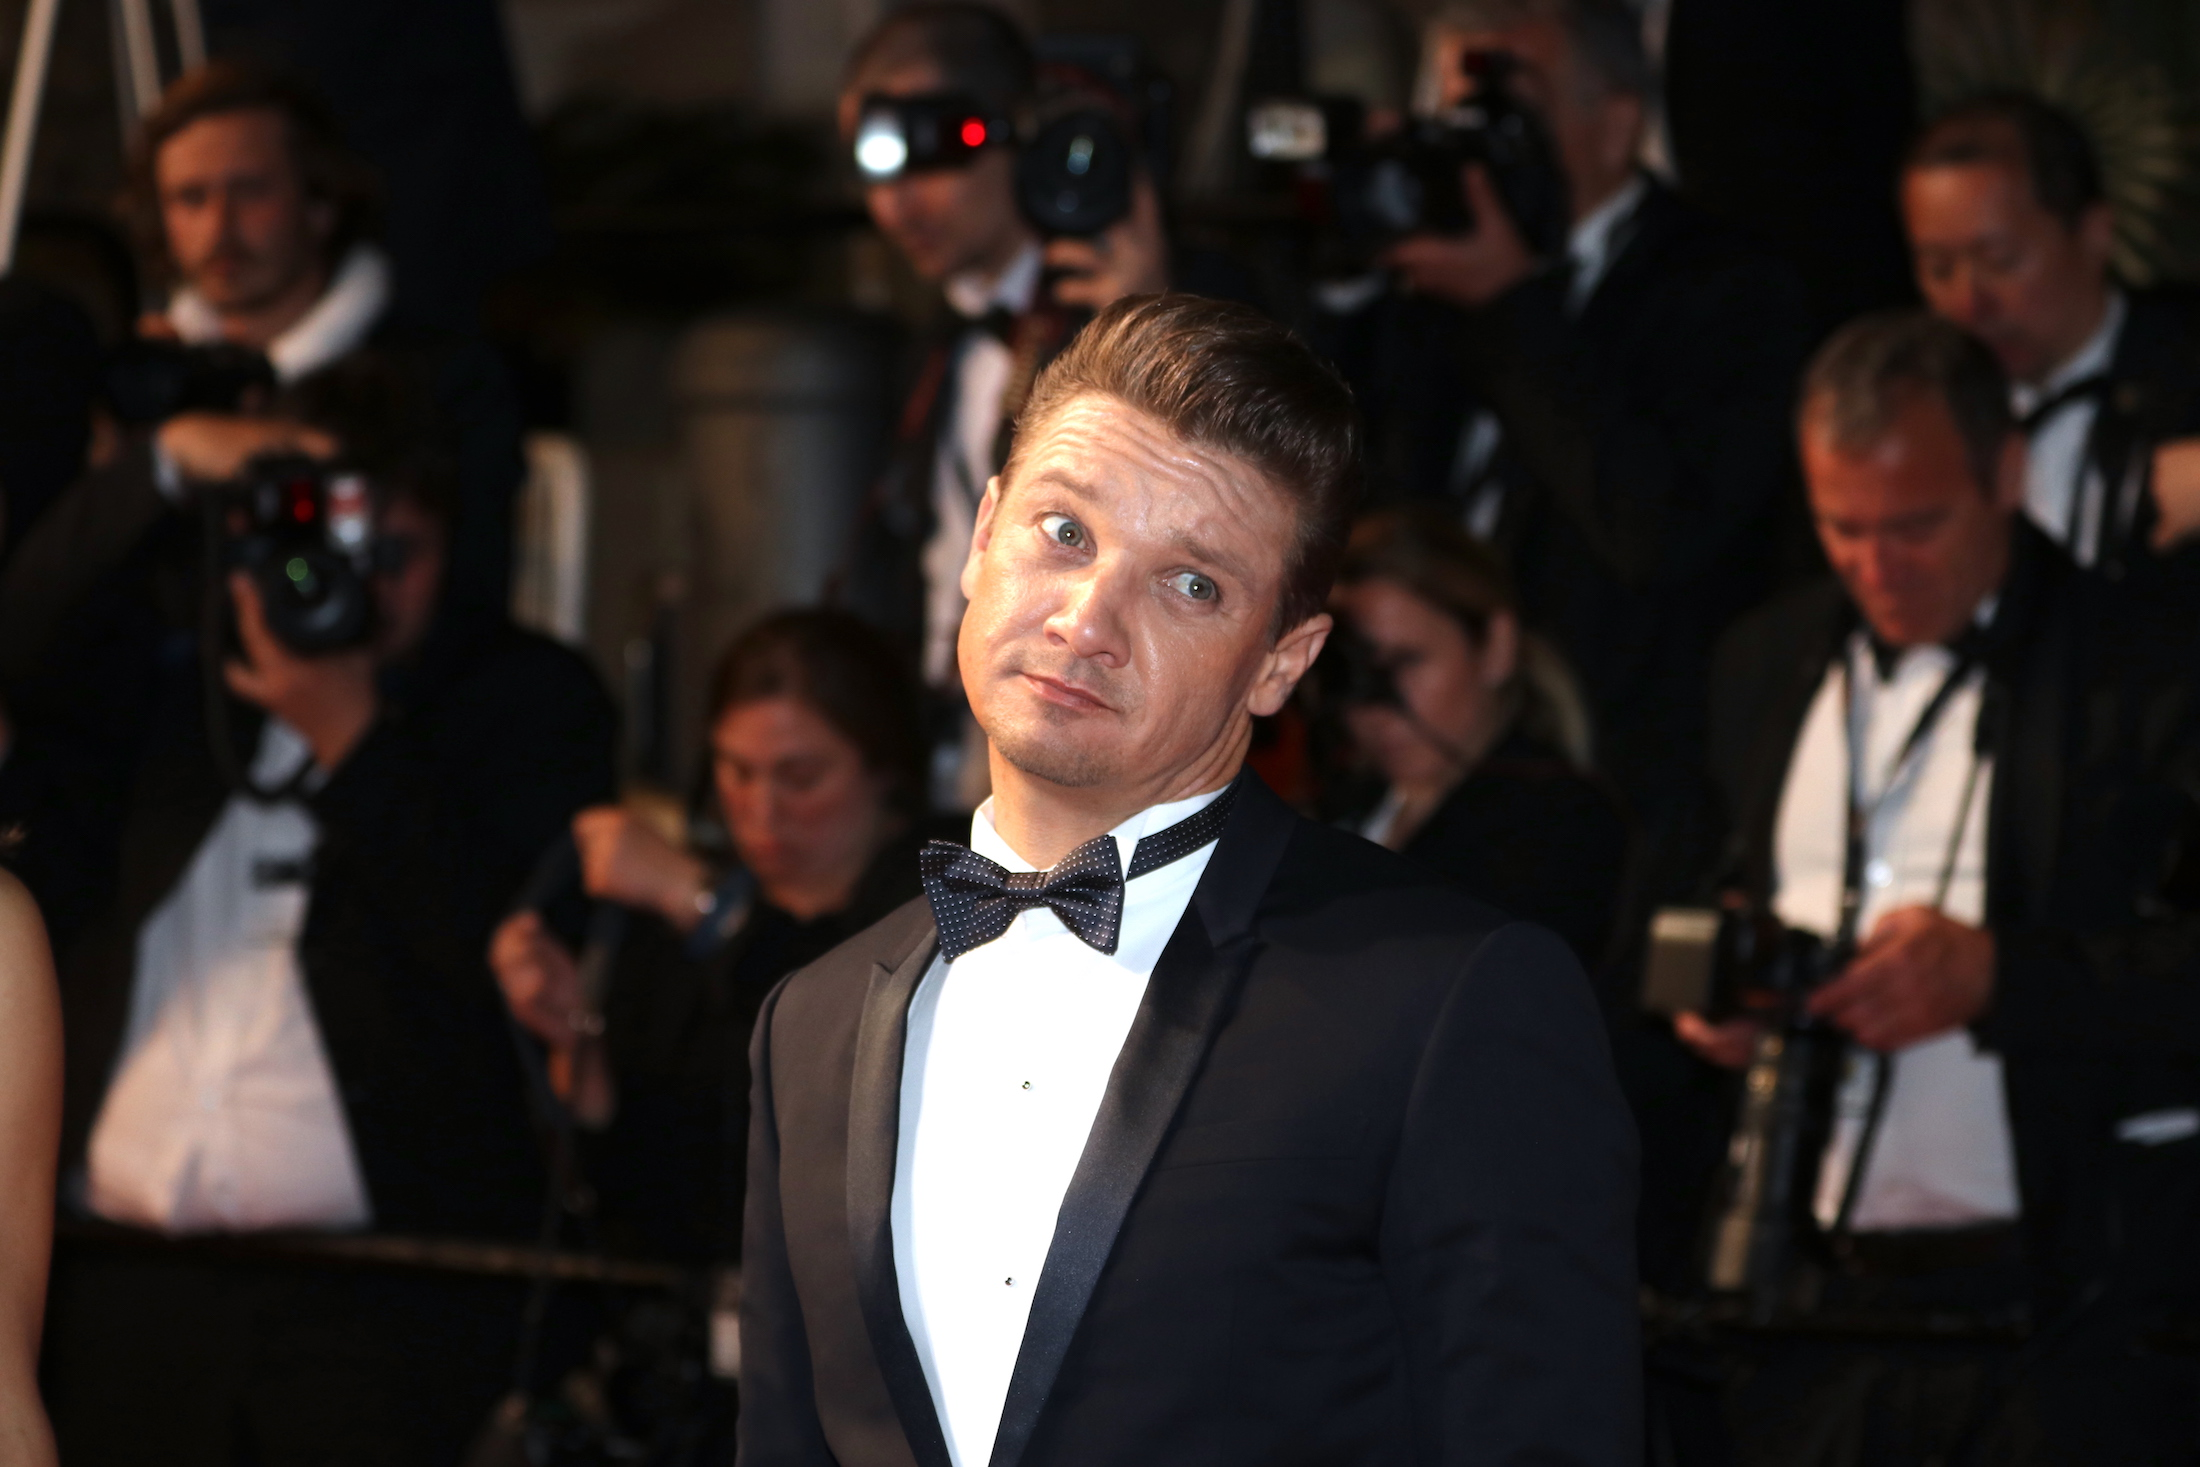 Cannes 2017: uno scherzoso Jeremy Renner sul red carpet per Wind River